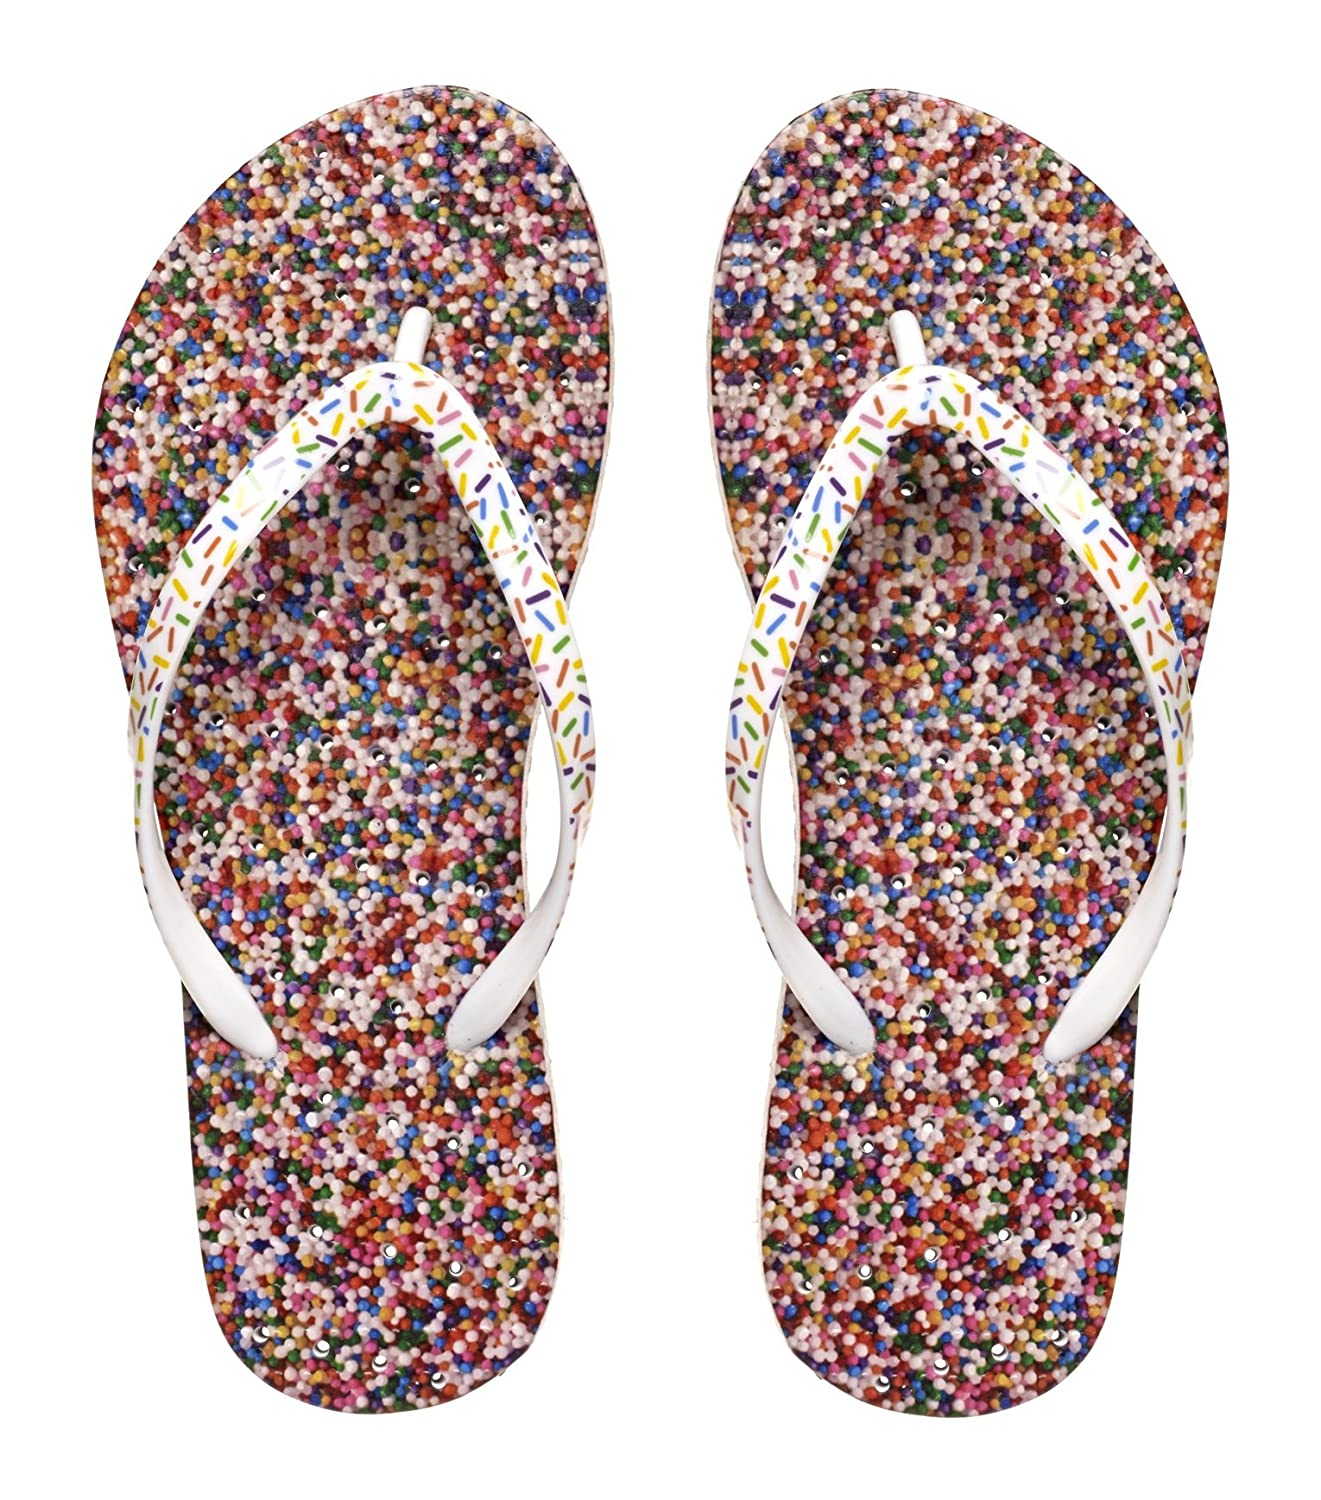 a86d44836 Amazon.com  Showaflops Womens  Antimicrobial Shower   Water Sandals for  Pool